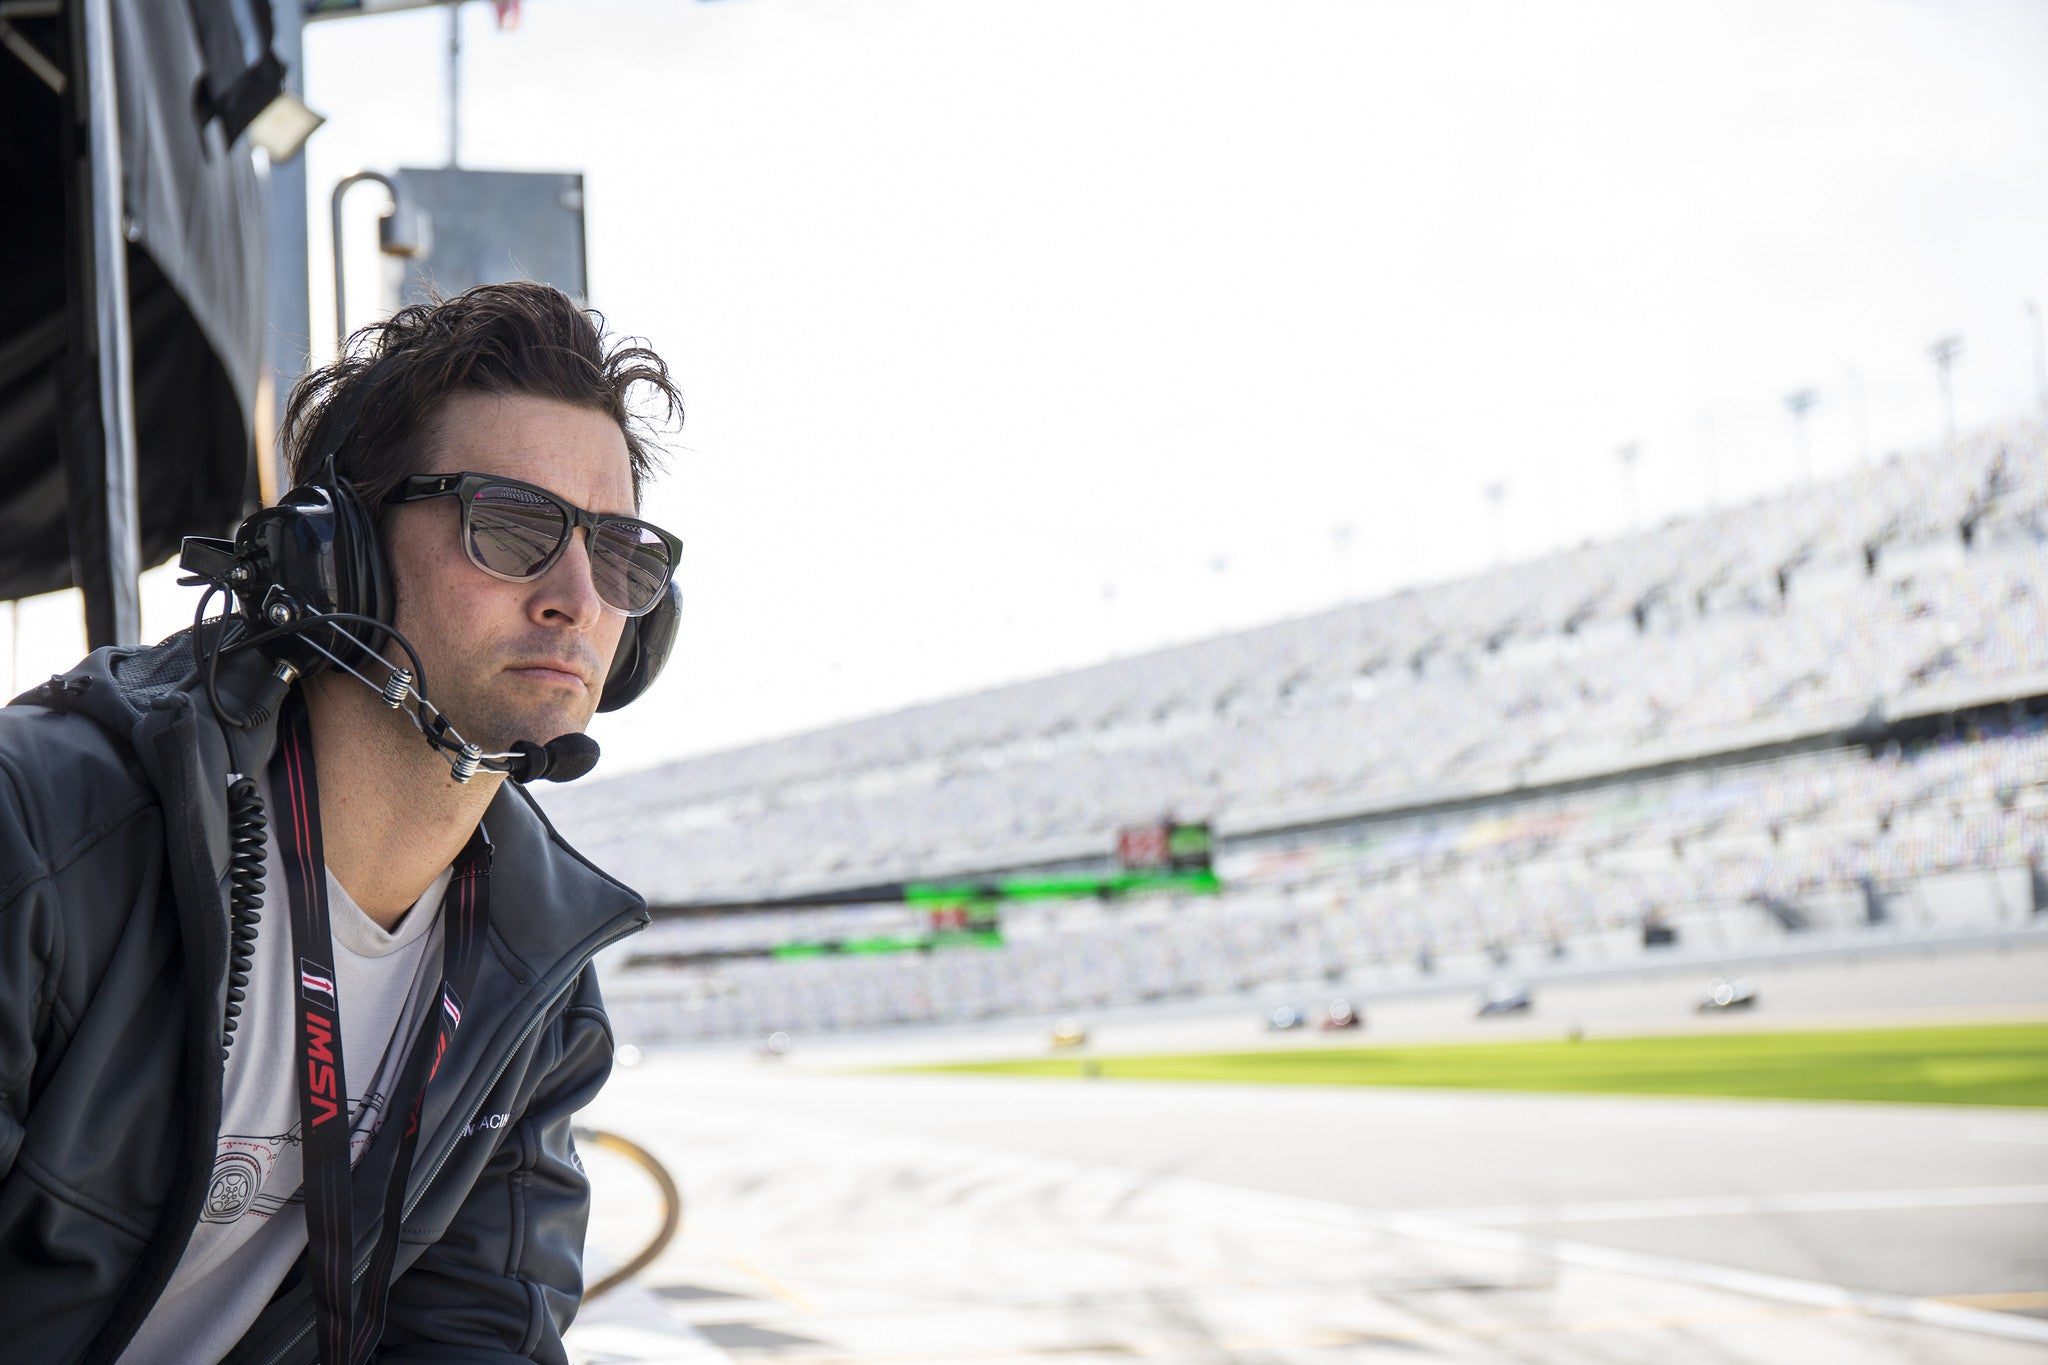 Incredible American Baseball Pitcher and Car Racing Team owner CJ Wilson goes into eyewear